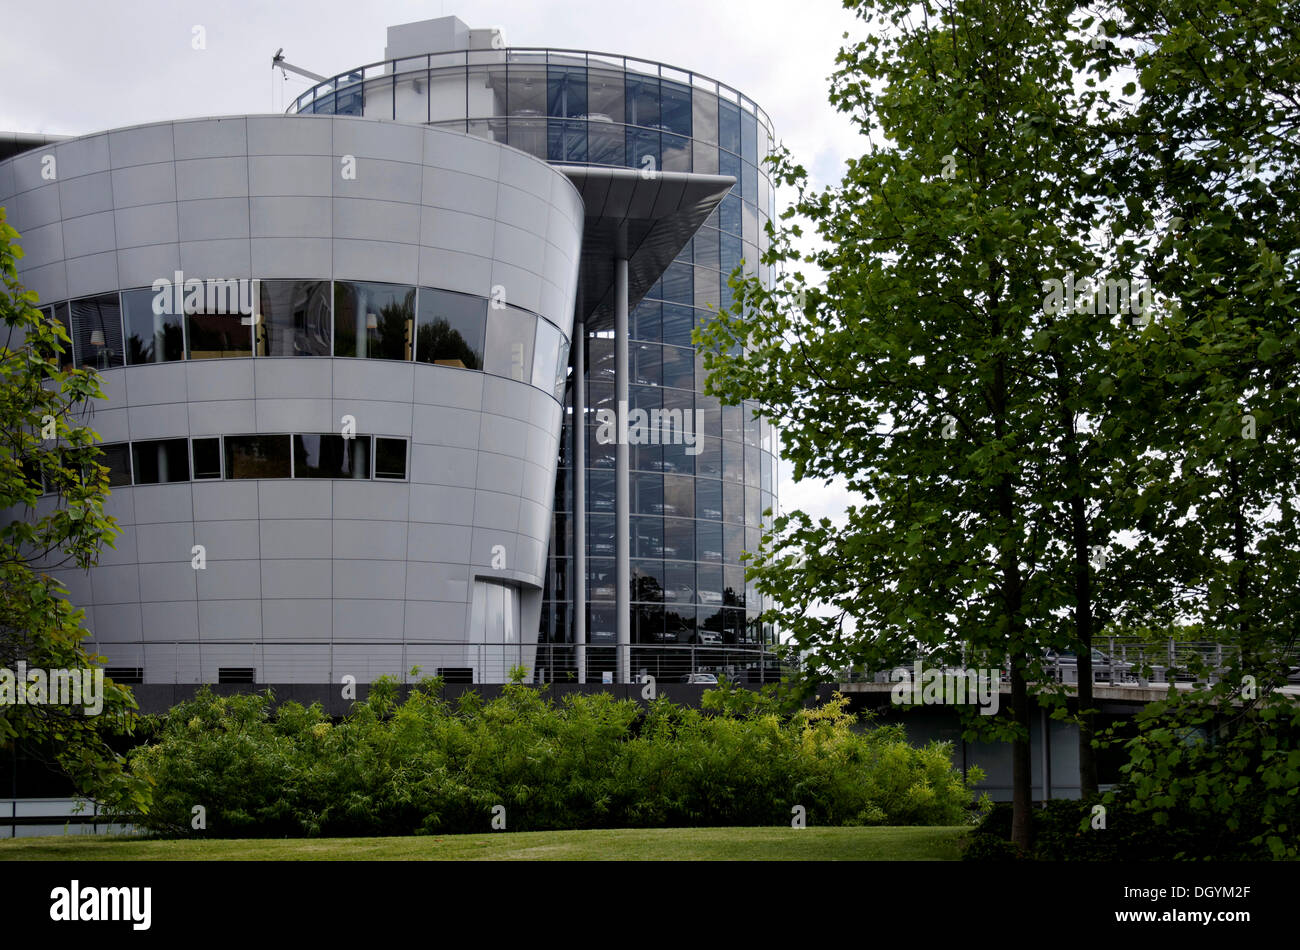 Transparent Factory, Volkswagen automobile plant, Dresden, Florence of the Elbe, Saxony - Stock Image